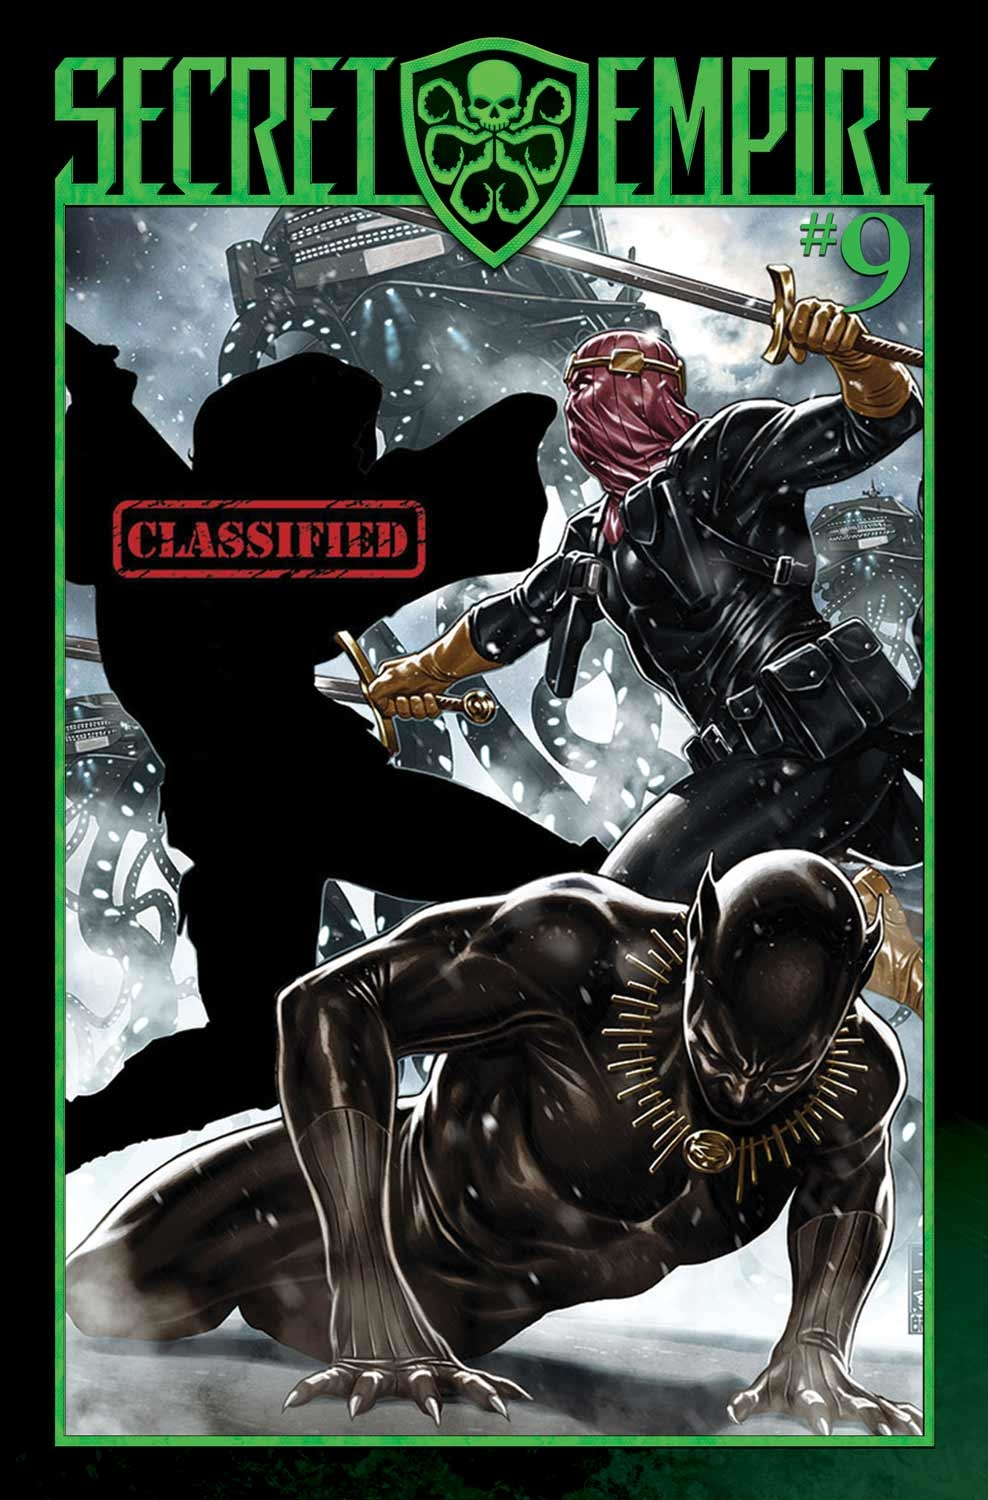 SECRET EMPIRE #9 (OF 10) SE